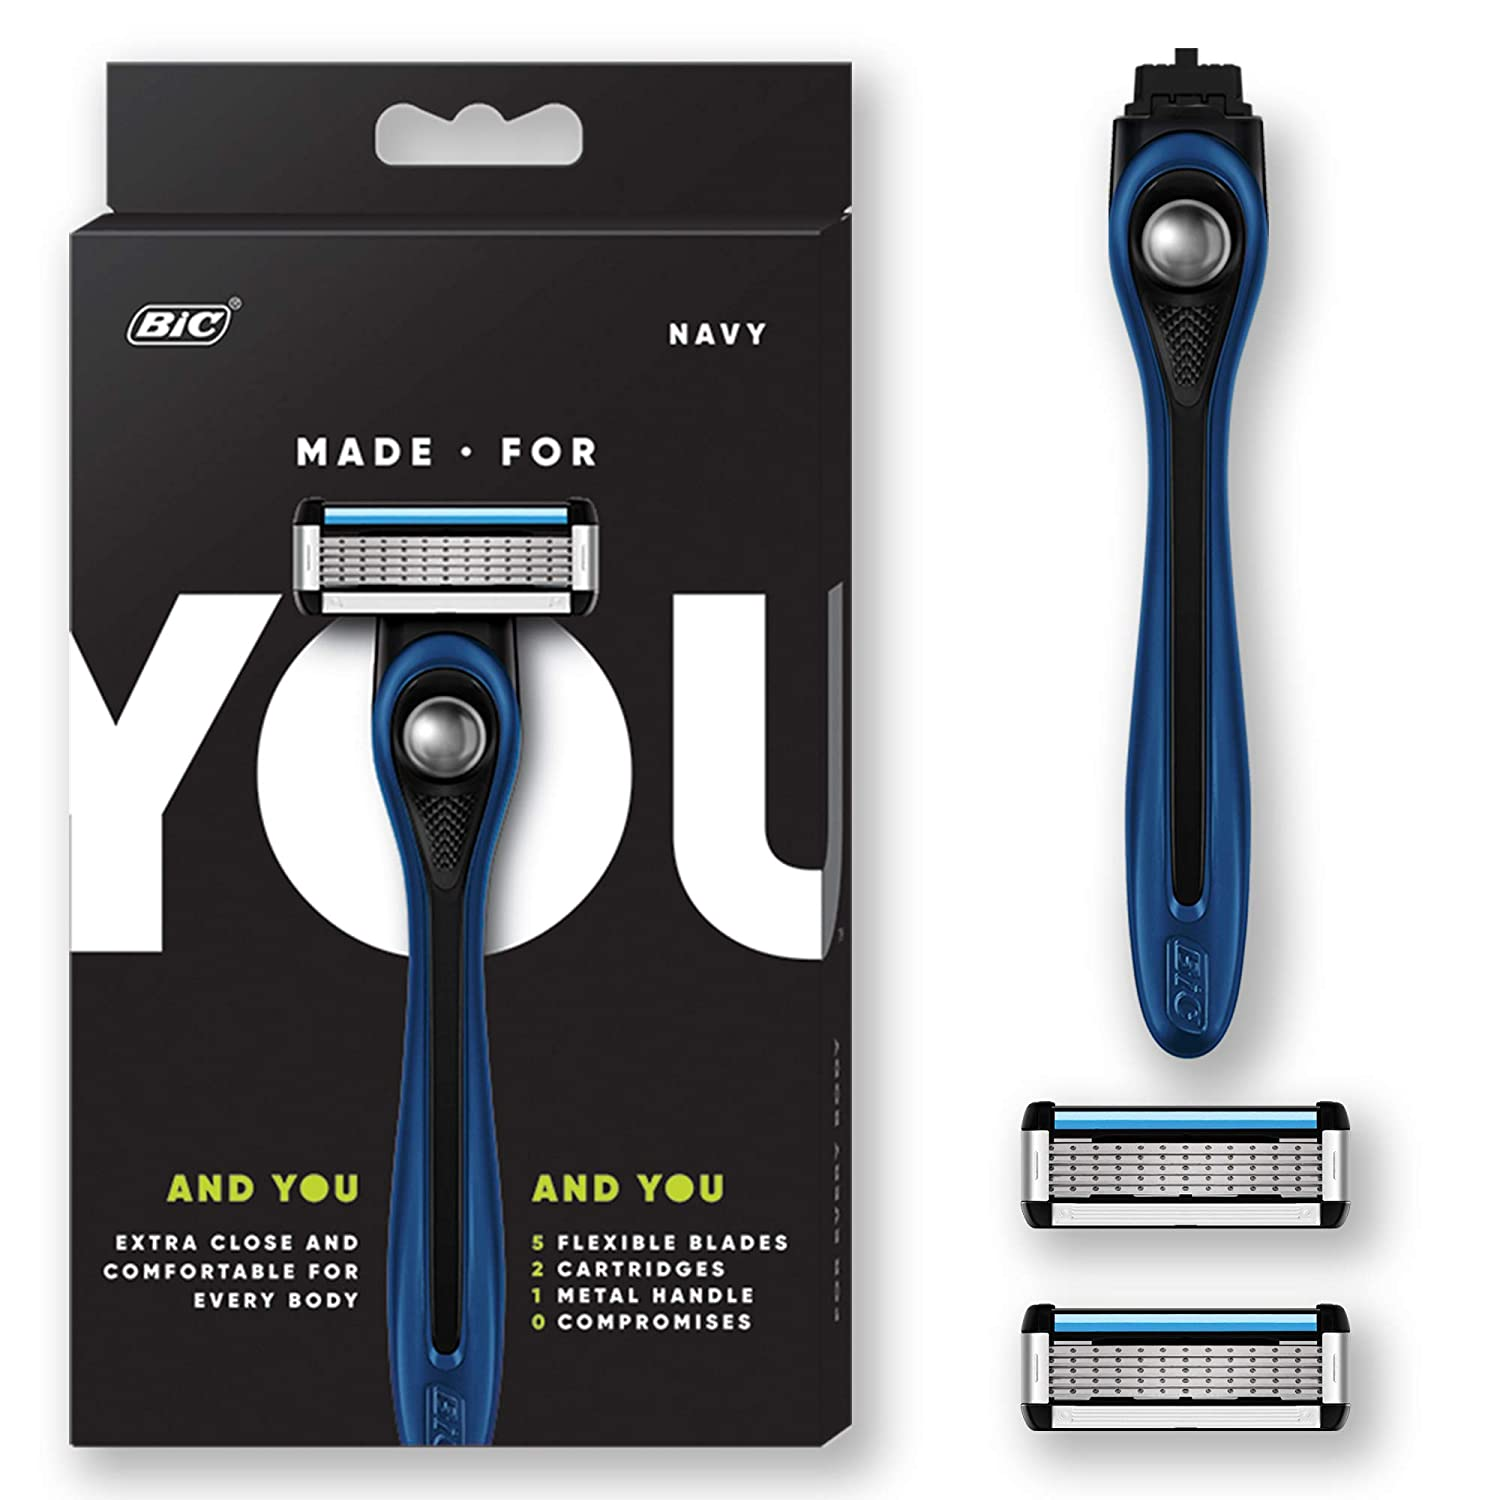 Made For YOU by BIC Shaving Razor Blades for Every Body - Men & Women, with 2 Cartridge Refills - 5-Blade Razors for a Smooth Close Shave & Hair Removal, NAVY, Kit